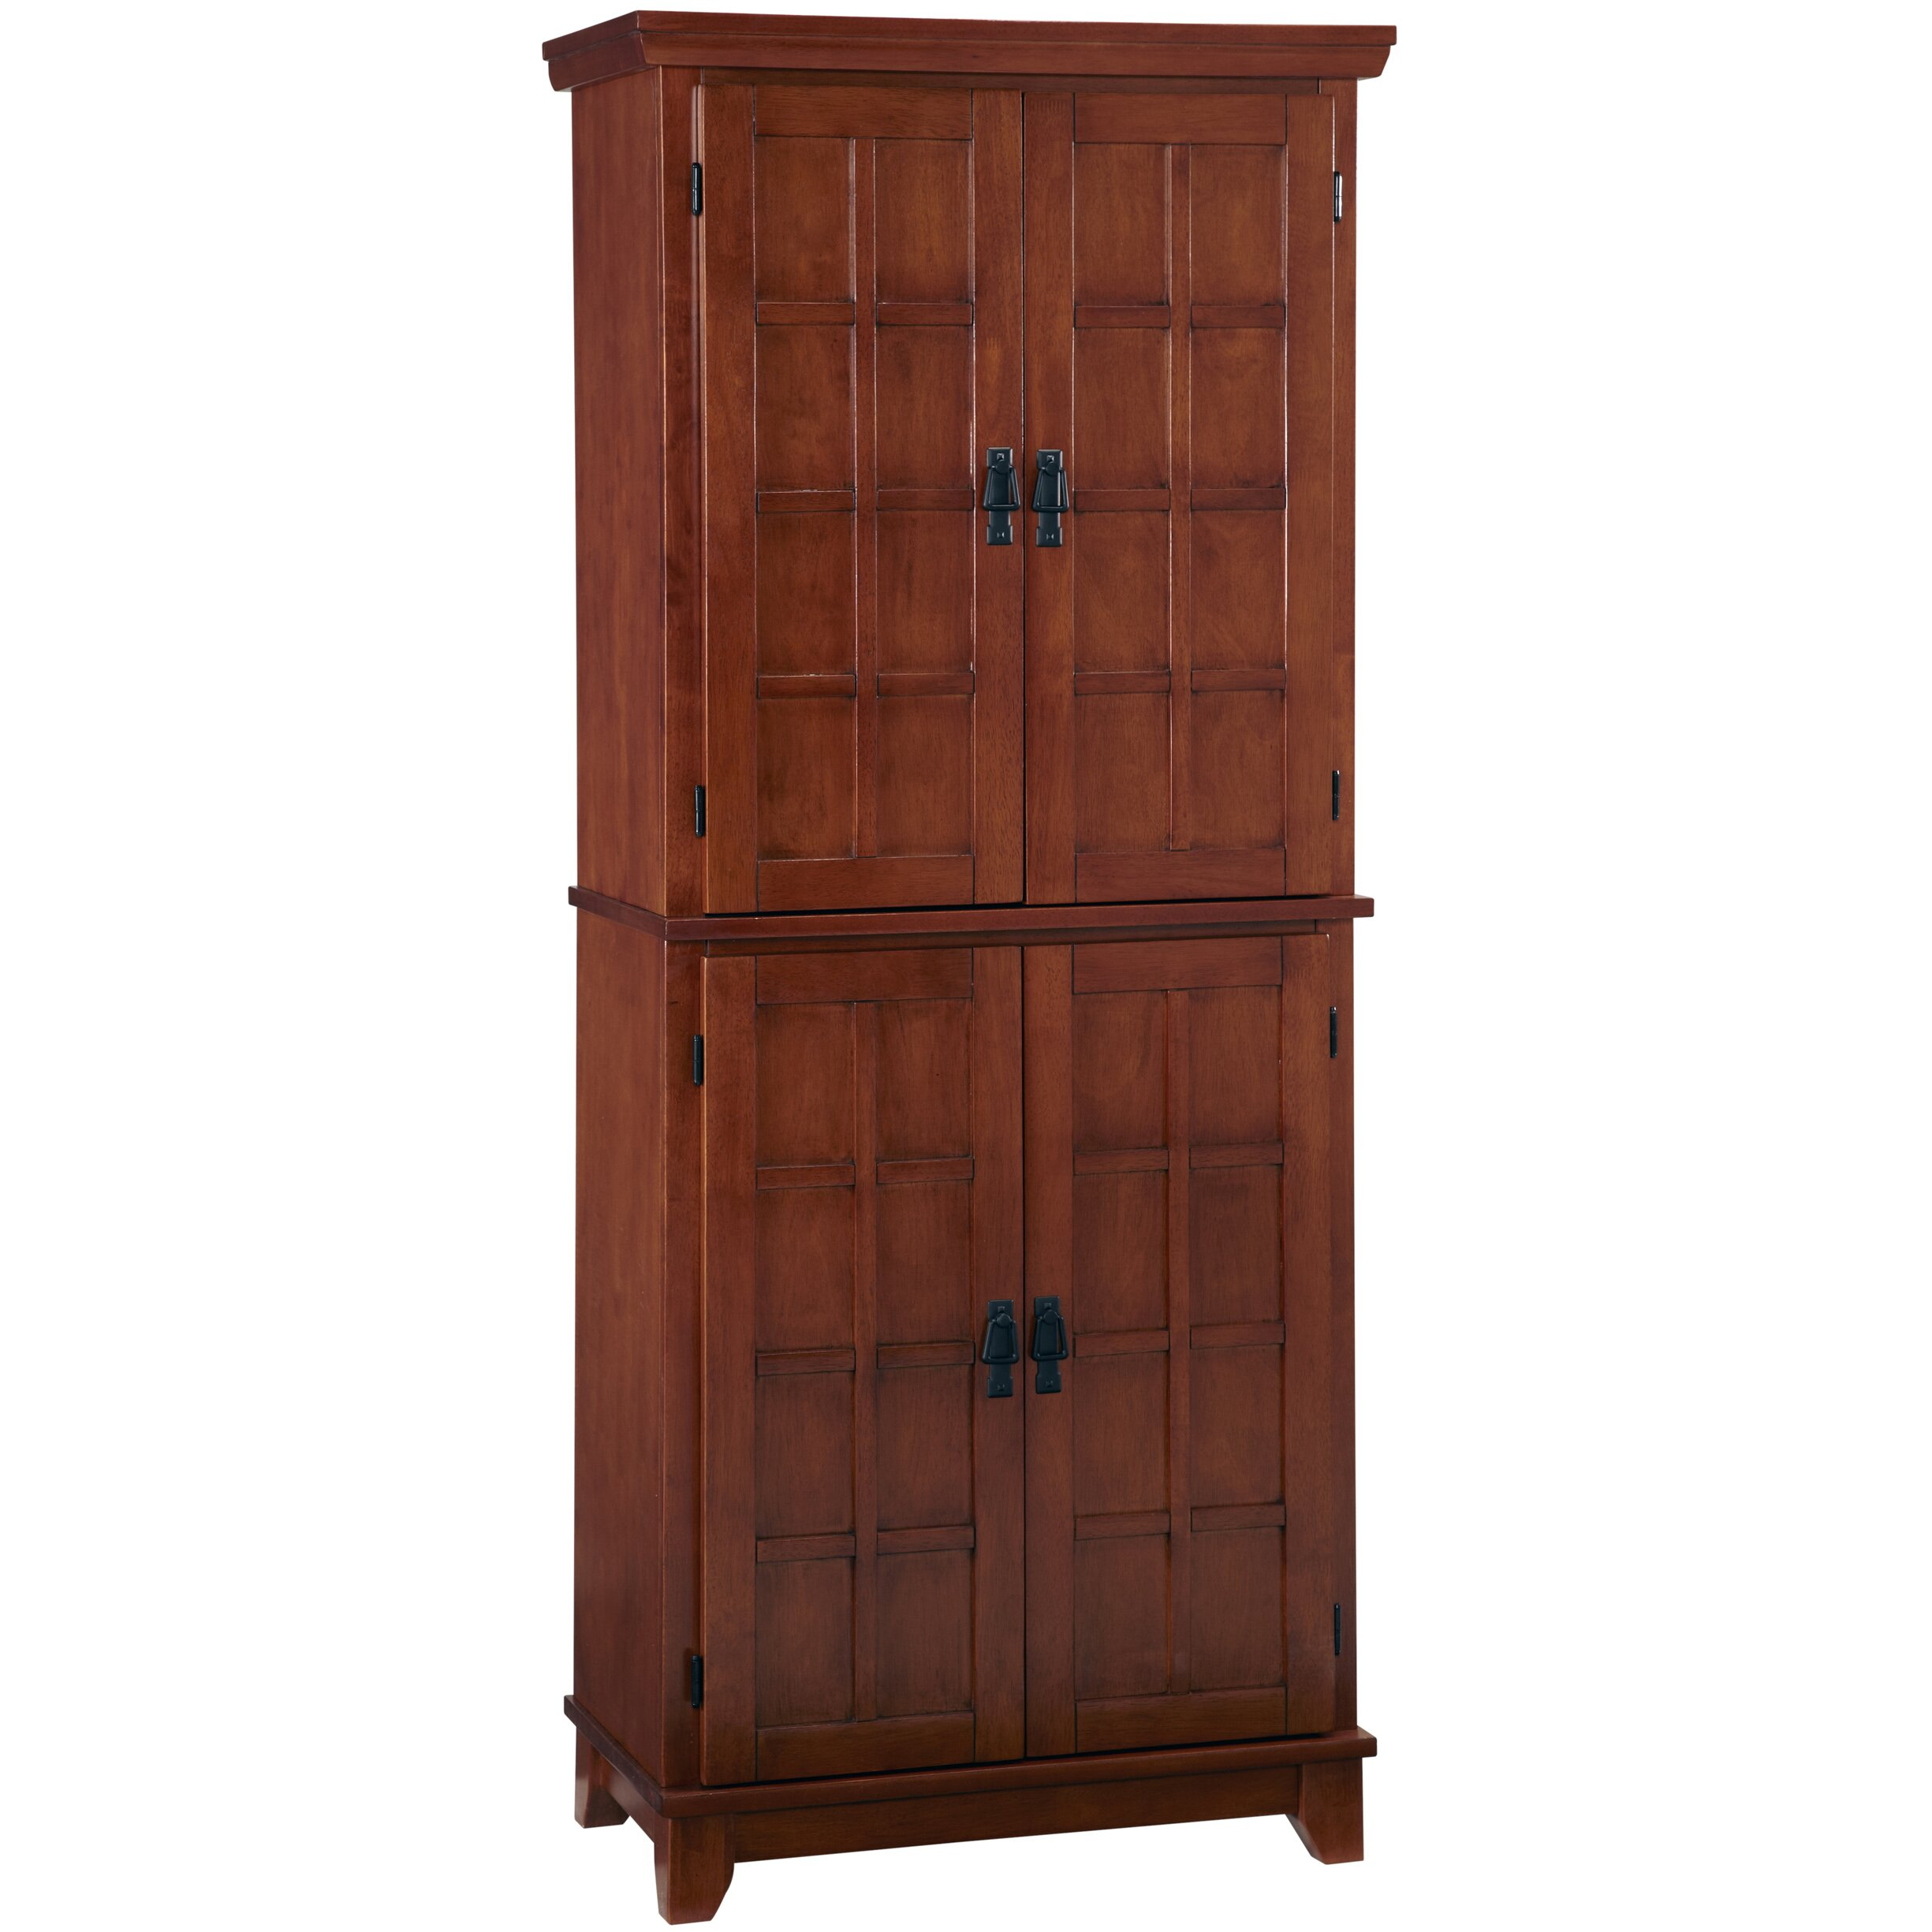 ... Tall Pantry Cabinet For Kitchen With Food Pantries Wayfair With Ikea  Kitchen Pantry Cabinet With Rubbermaid